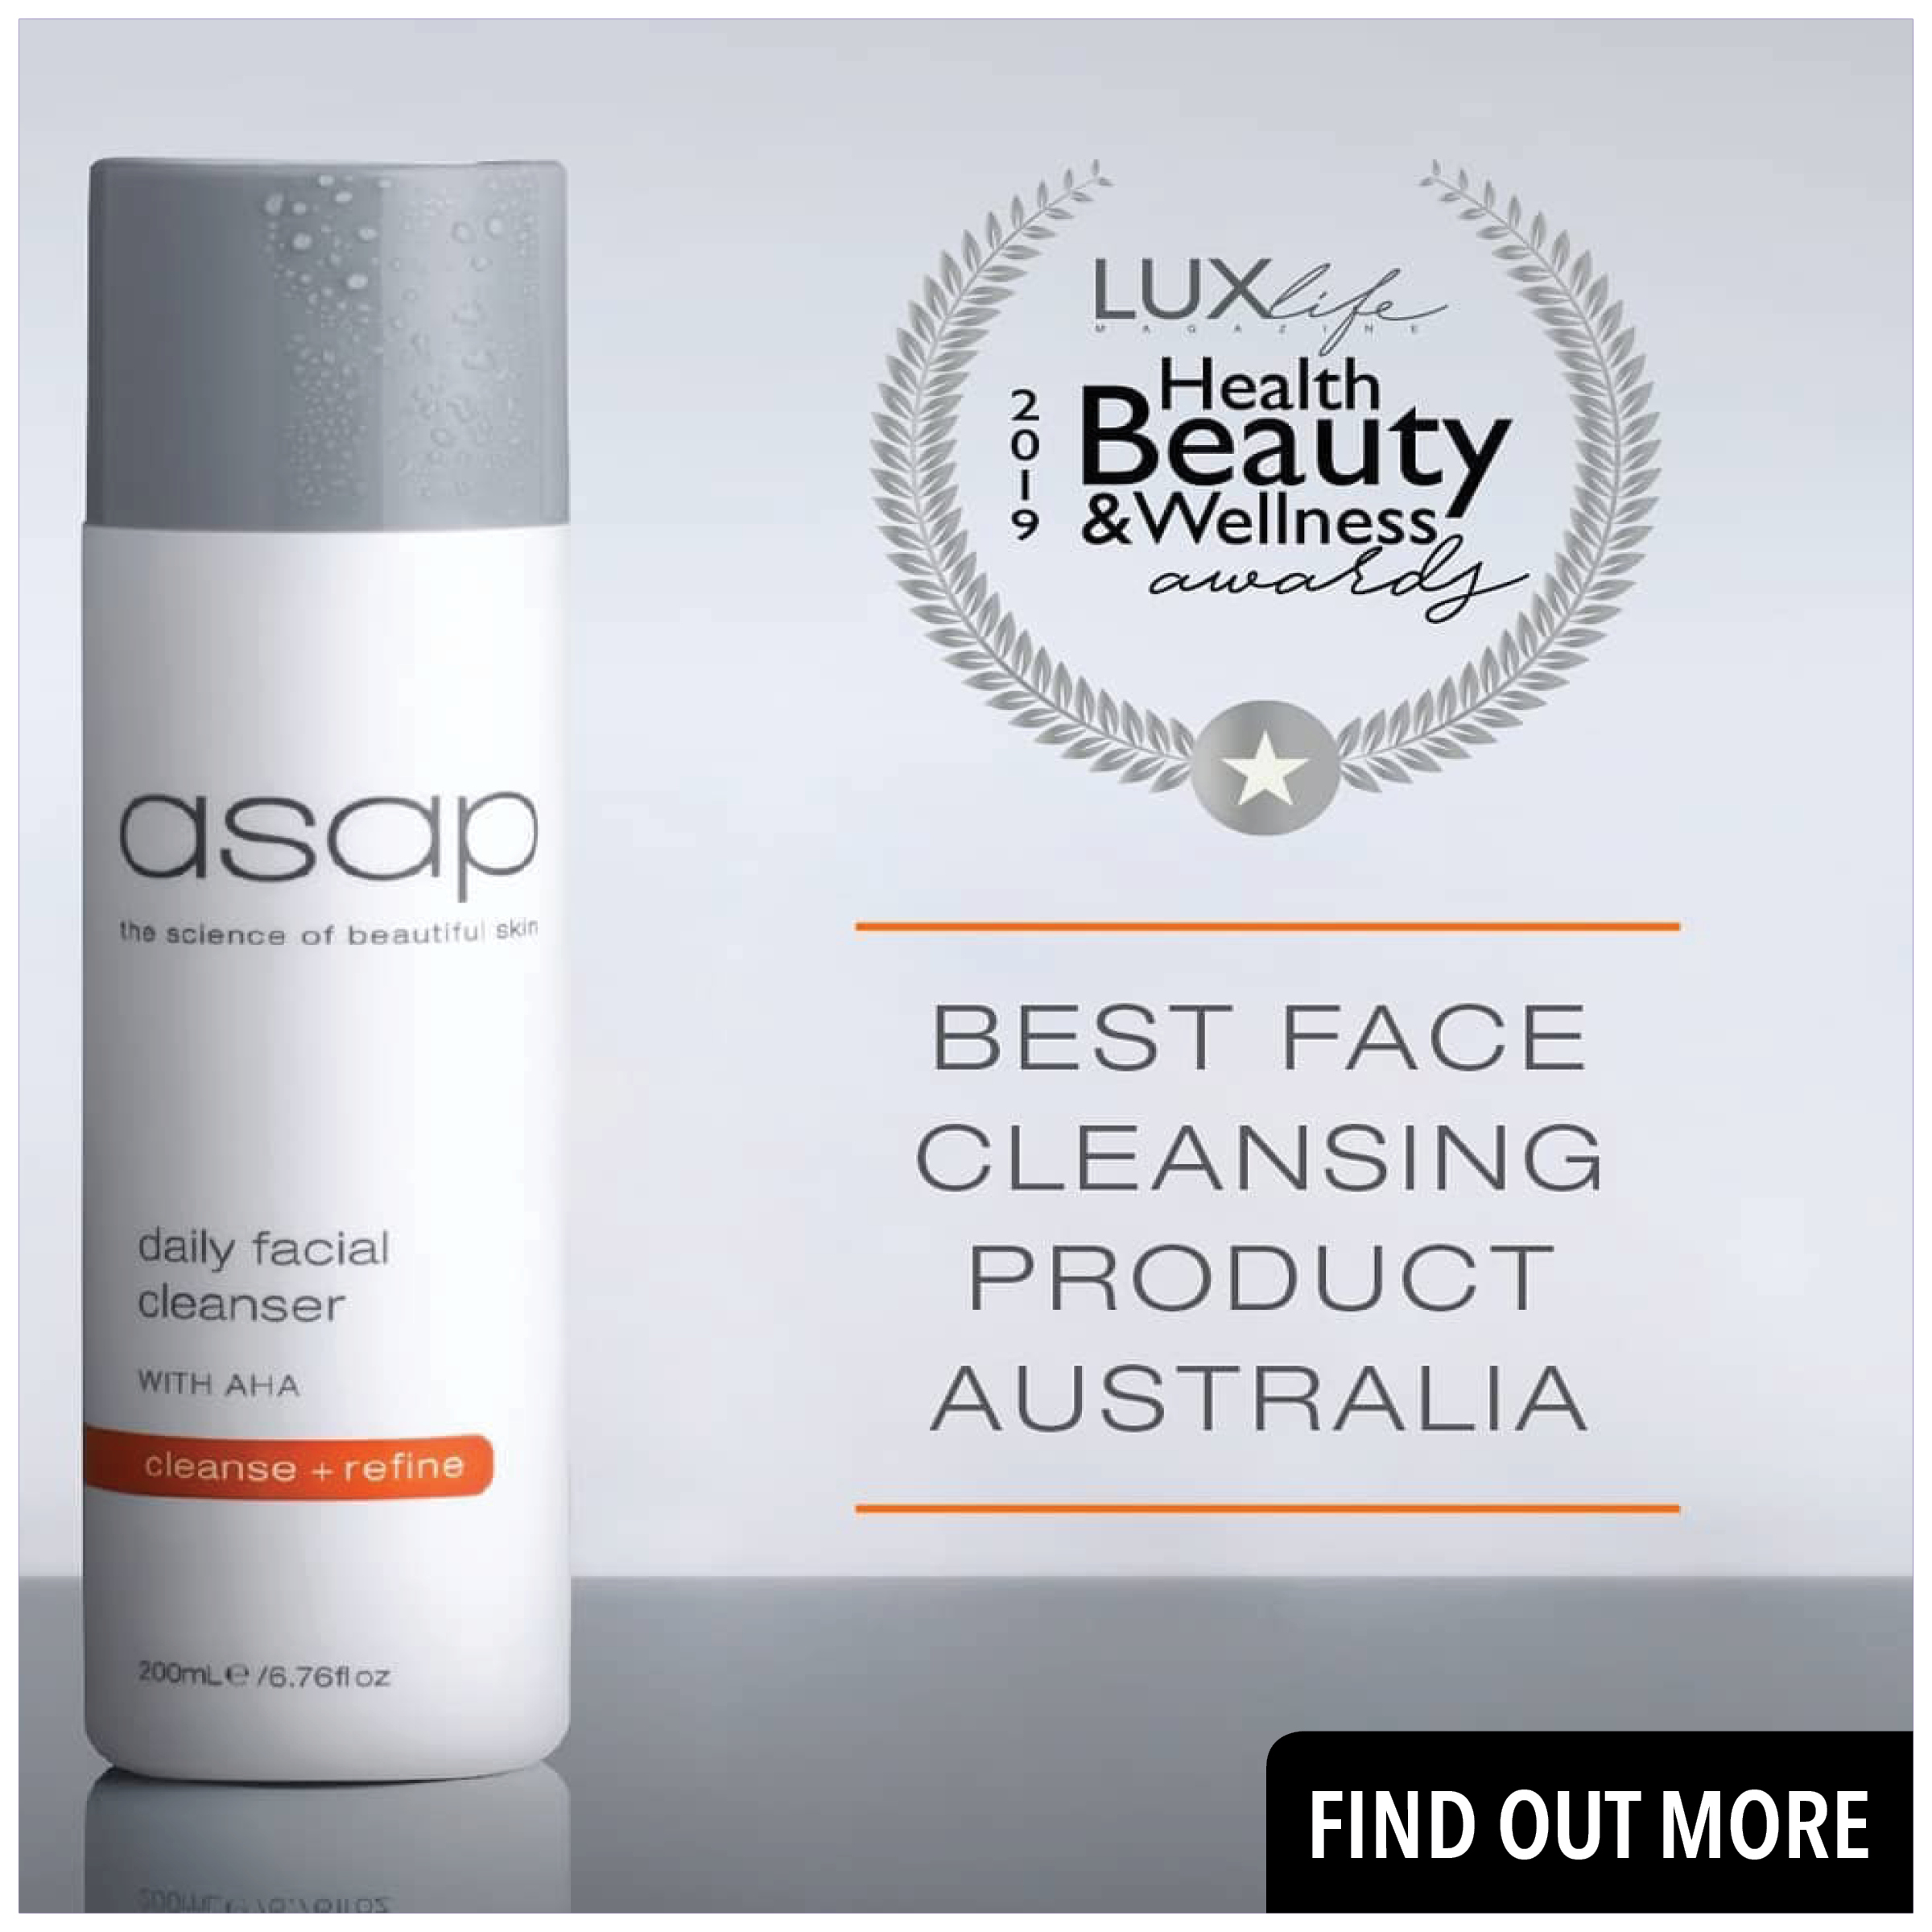 asap Daily Facial Cleanser 200ml - best price at Prodermal NZ